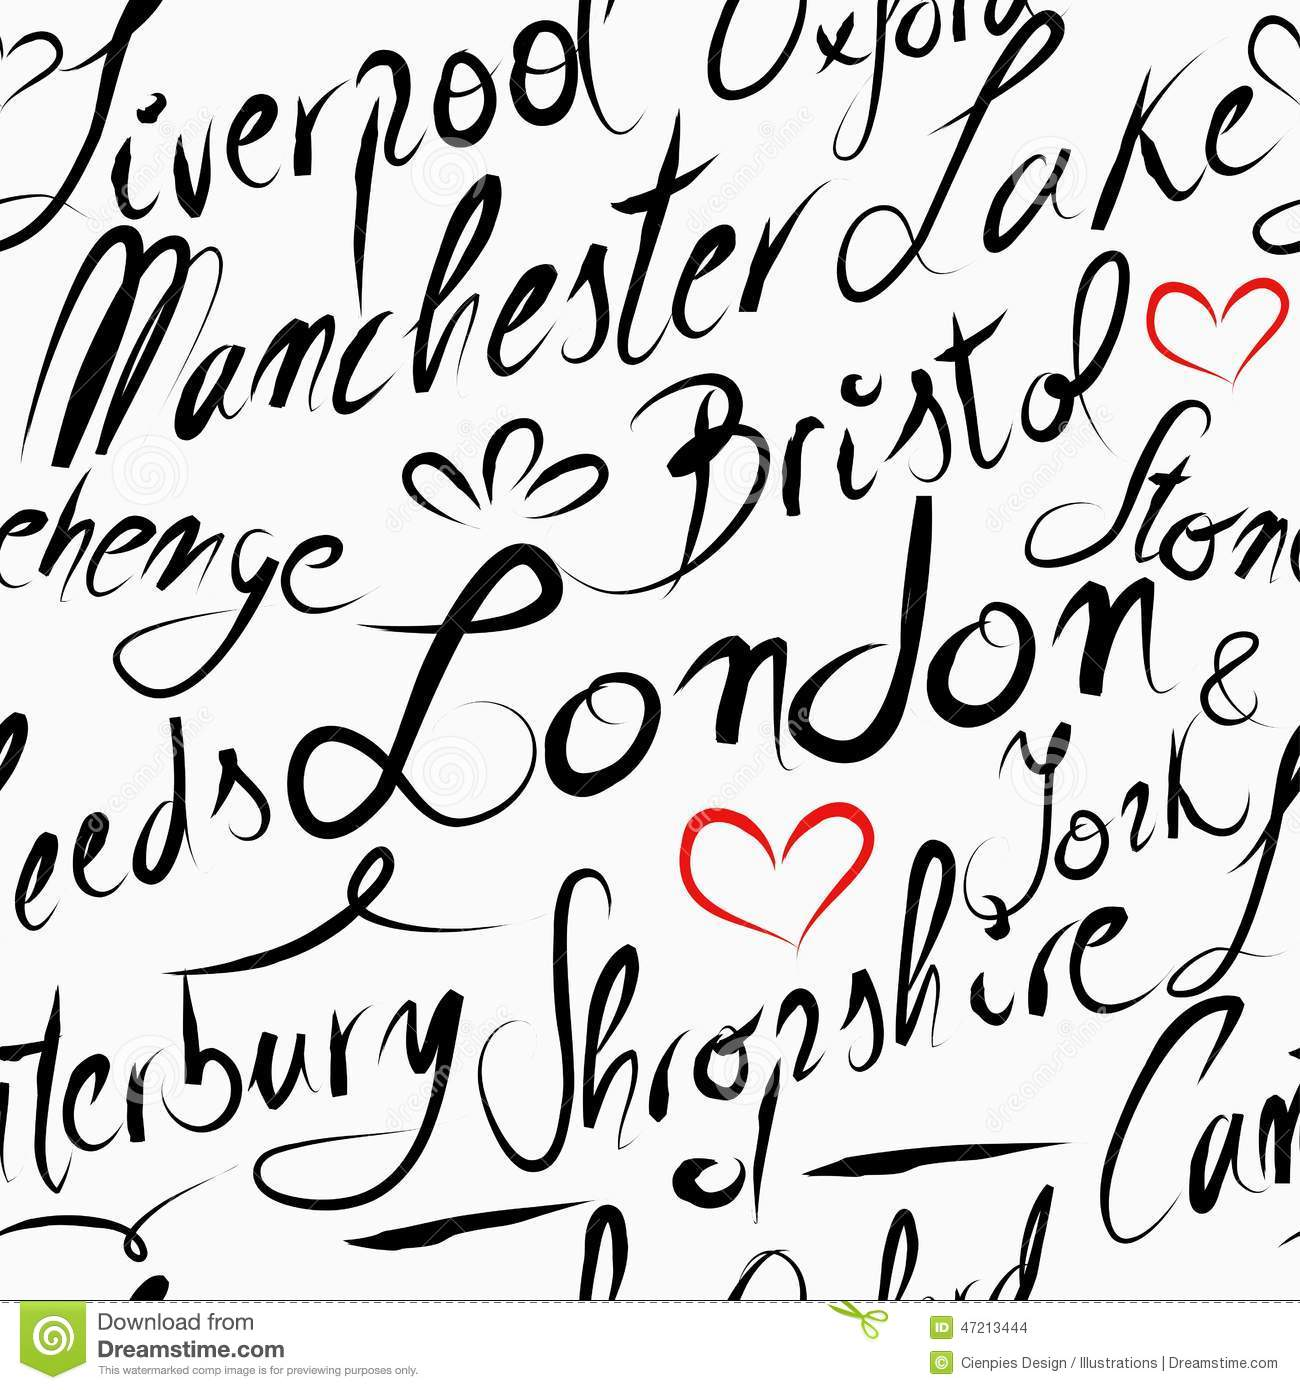 Printable Alabama Outline Map Download Now Pdf together with Printable Alabama Outline Map Download Now Pdf moreover Royalty Free Stock Photos Kenya Outline Map Image4493238 furthermore Stock Illustration Travel England Destination Seamless Pattern Background Uk Famous Cities Handmade Calligraphy London City Manchester Liverpool Image47213444 likewise  on usa vector map cities